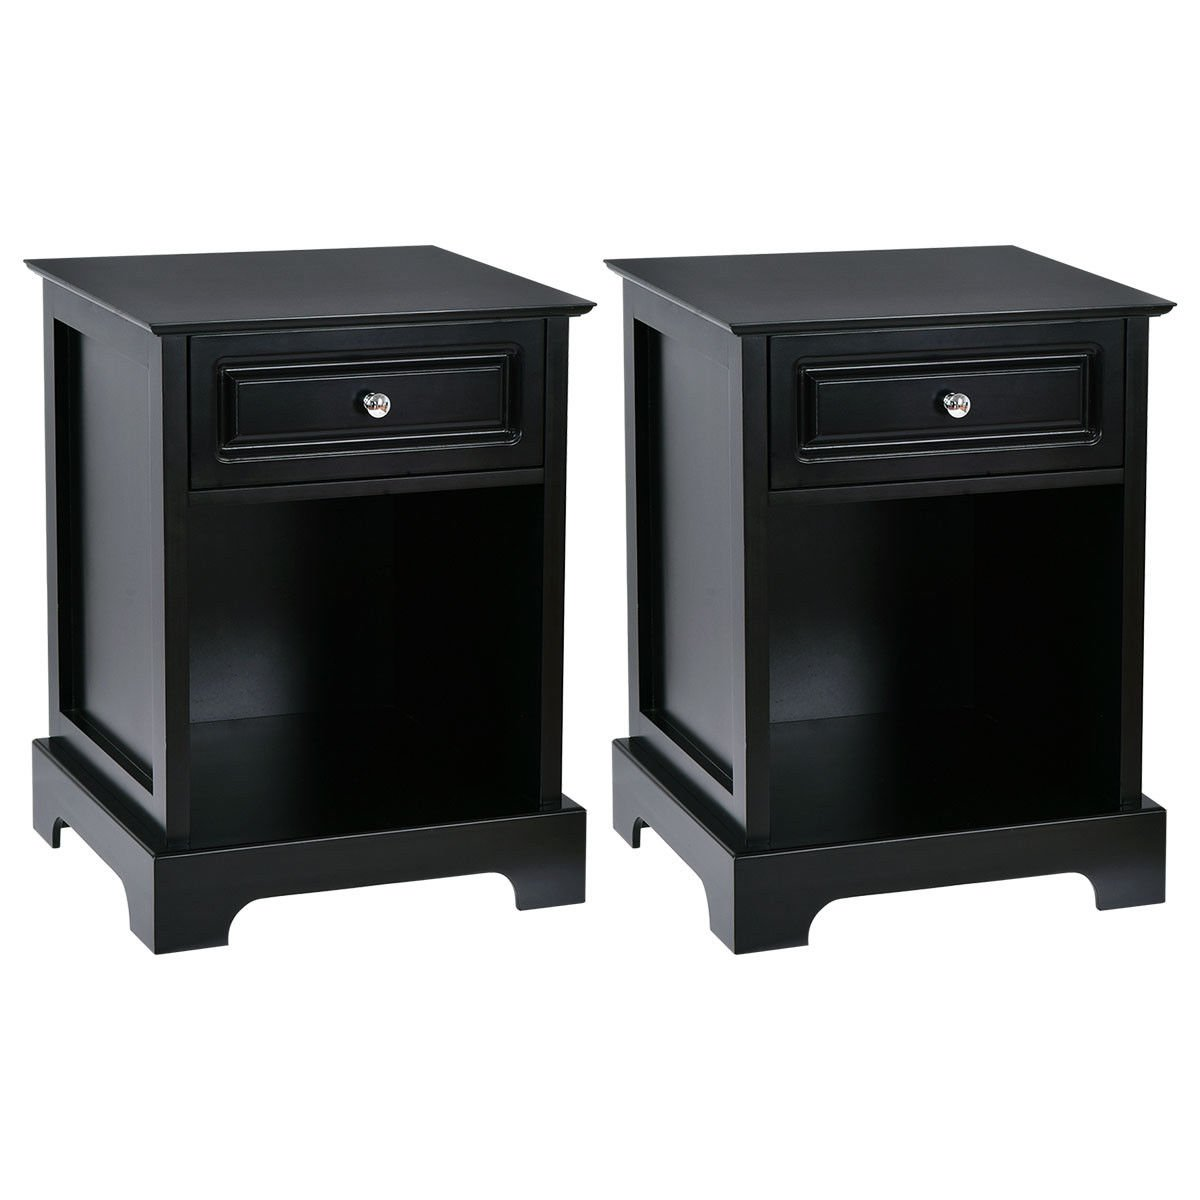 night stand end accent table drawer chest sofa side bedside storage black kitchen dining ashley furniture piece set with drawers drinks cooler mcm small concrete barn door room